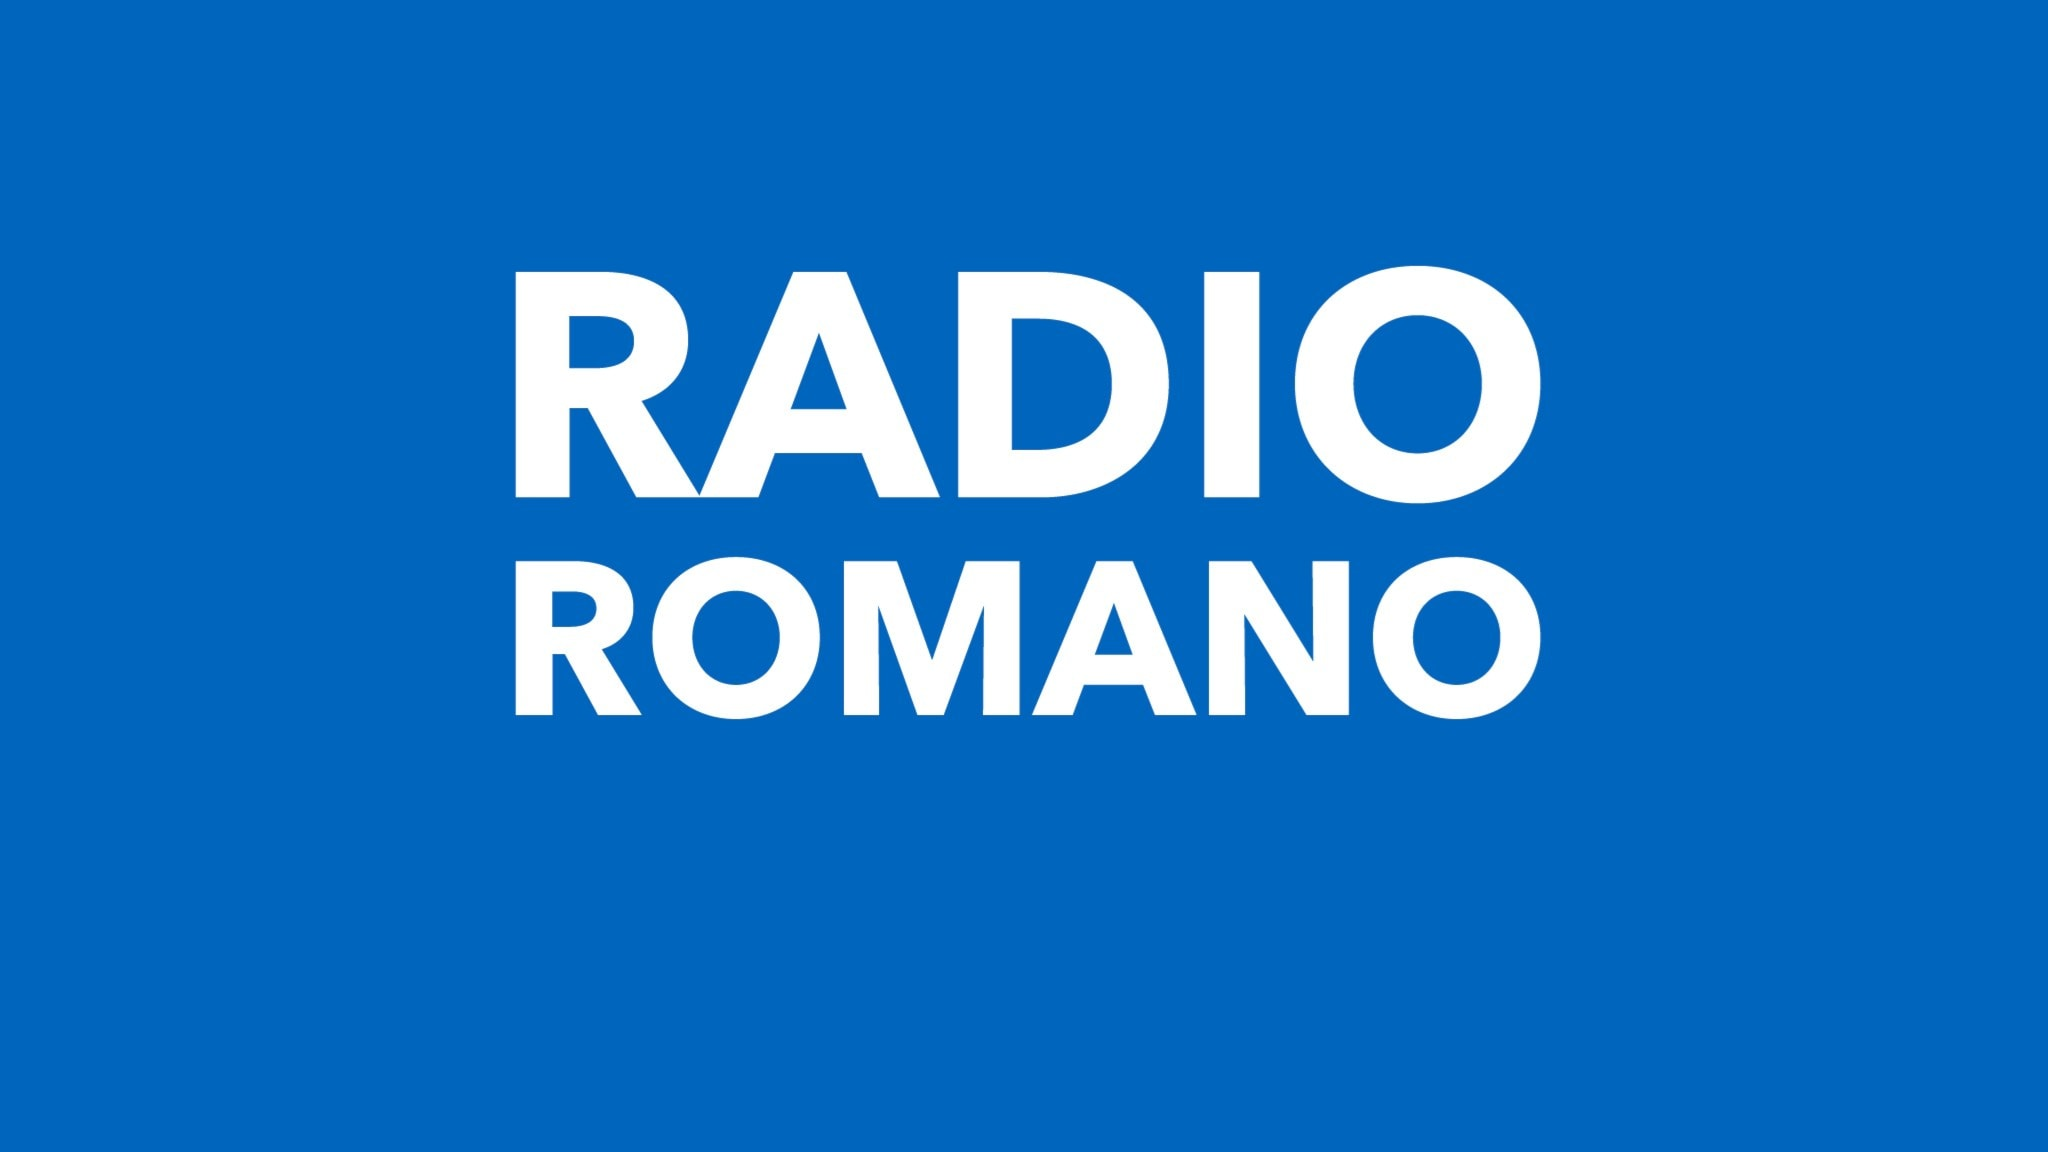 Radio Romano